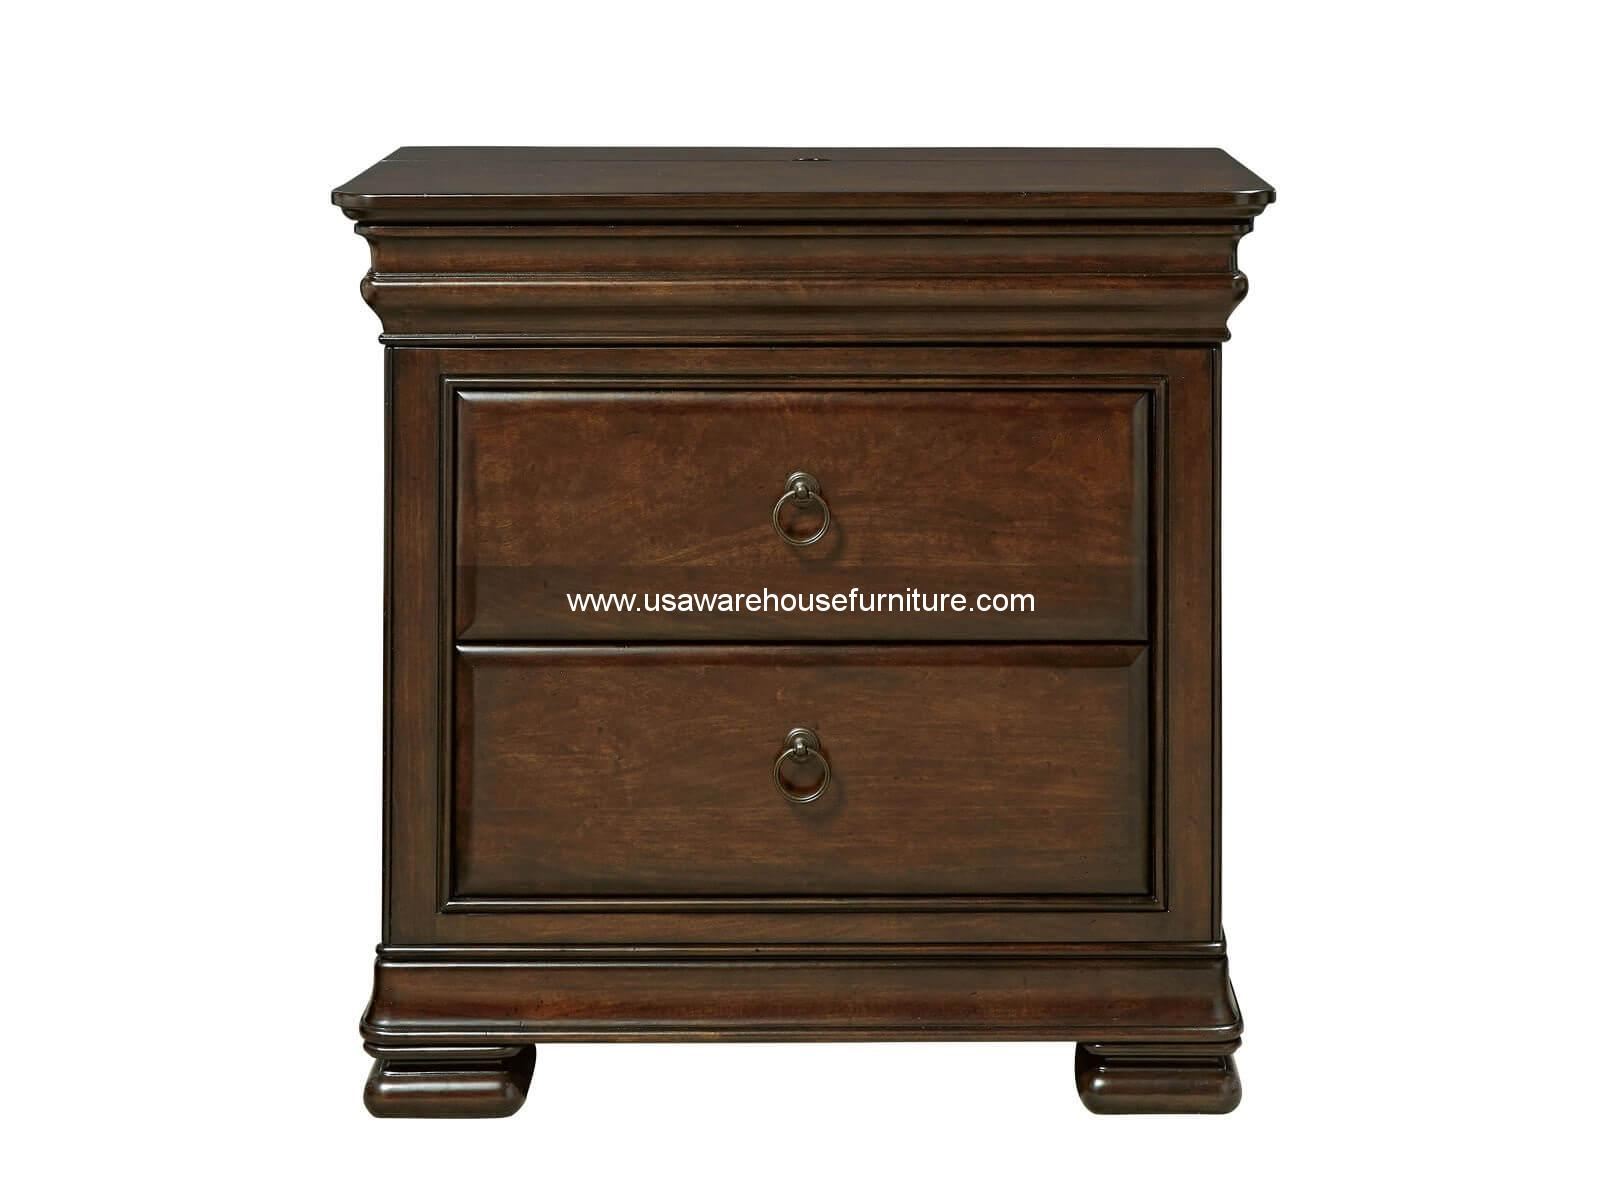 Reprise Nightstand Classical Cherry Finish Usa Warehouse